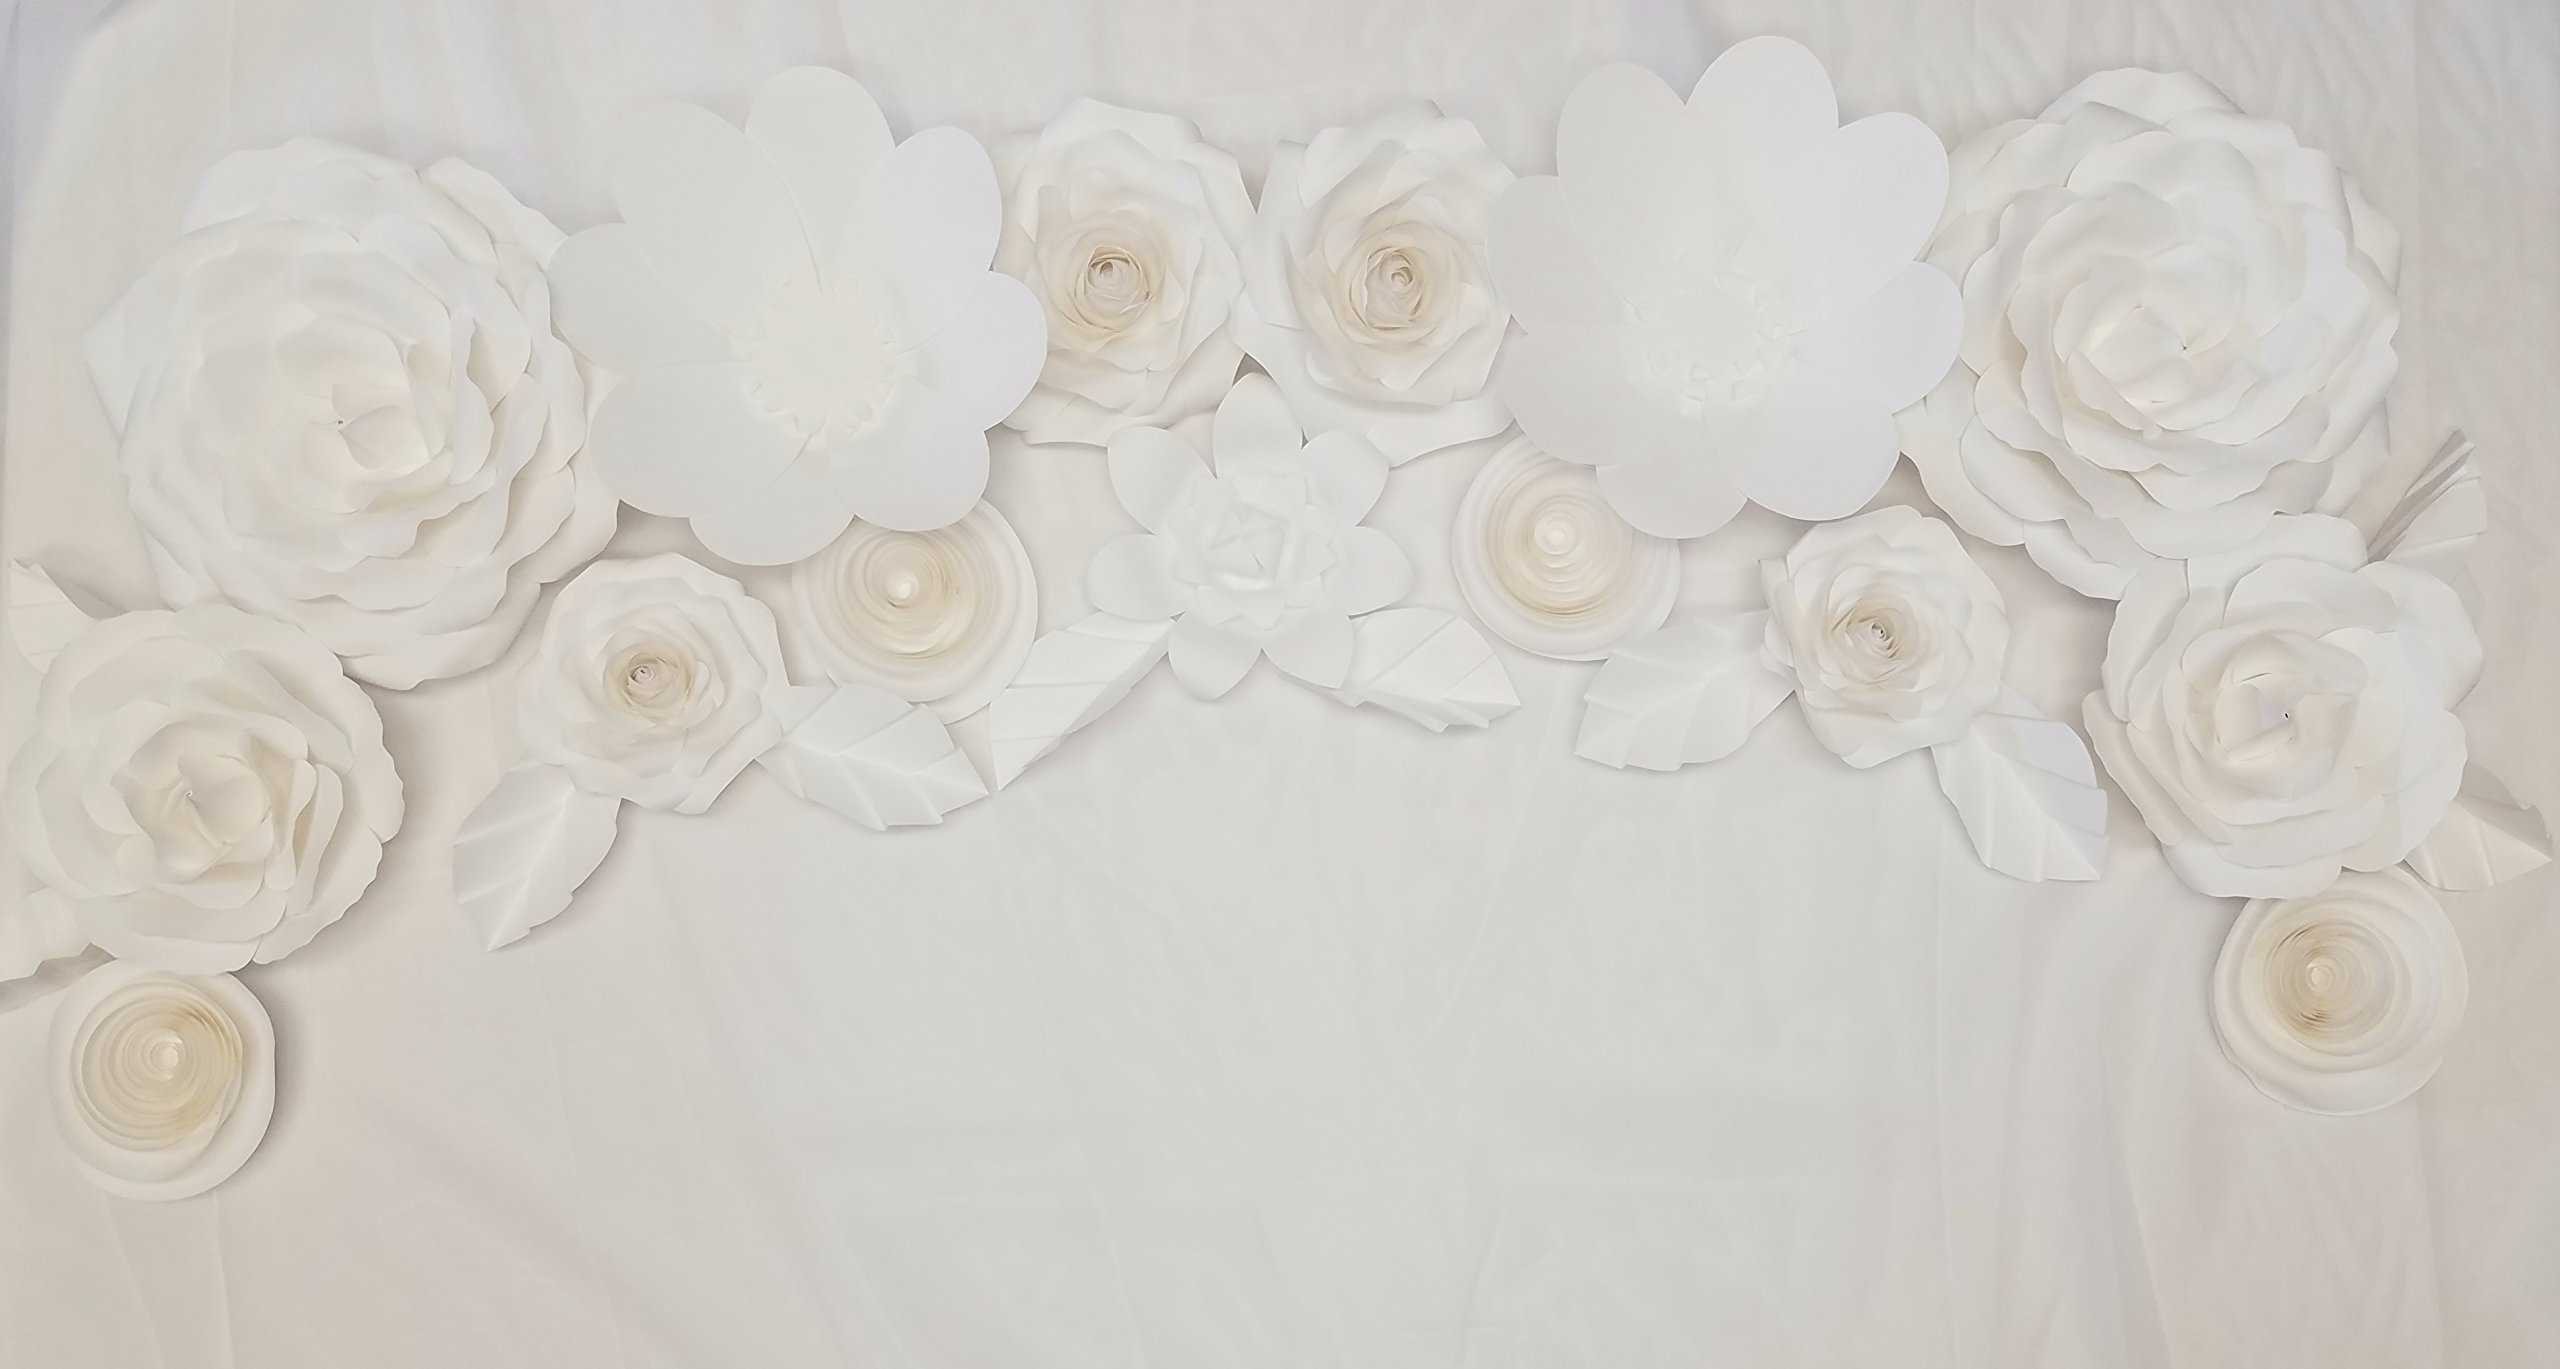 Giant Wedding Paper Flower Decoration Set 25PC, Wedding Decor, Wedding Backdrop, Wedding Flowers, Wedding Potography, Flower Wall Decor, Backdrop, Photobooth, Bridal Shower, Centerpiece